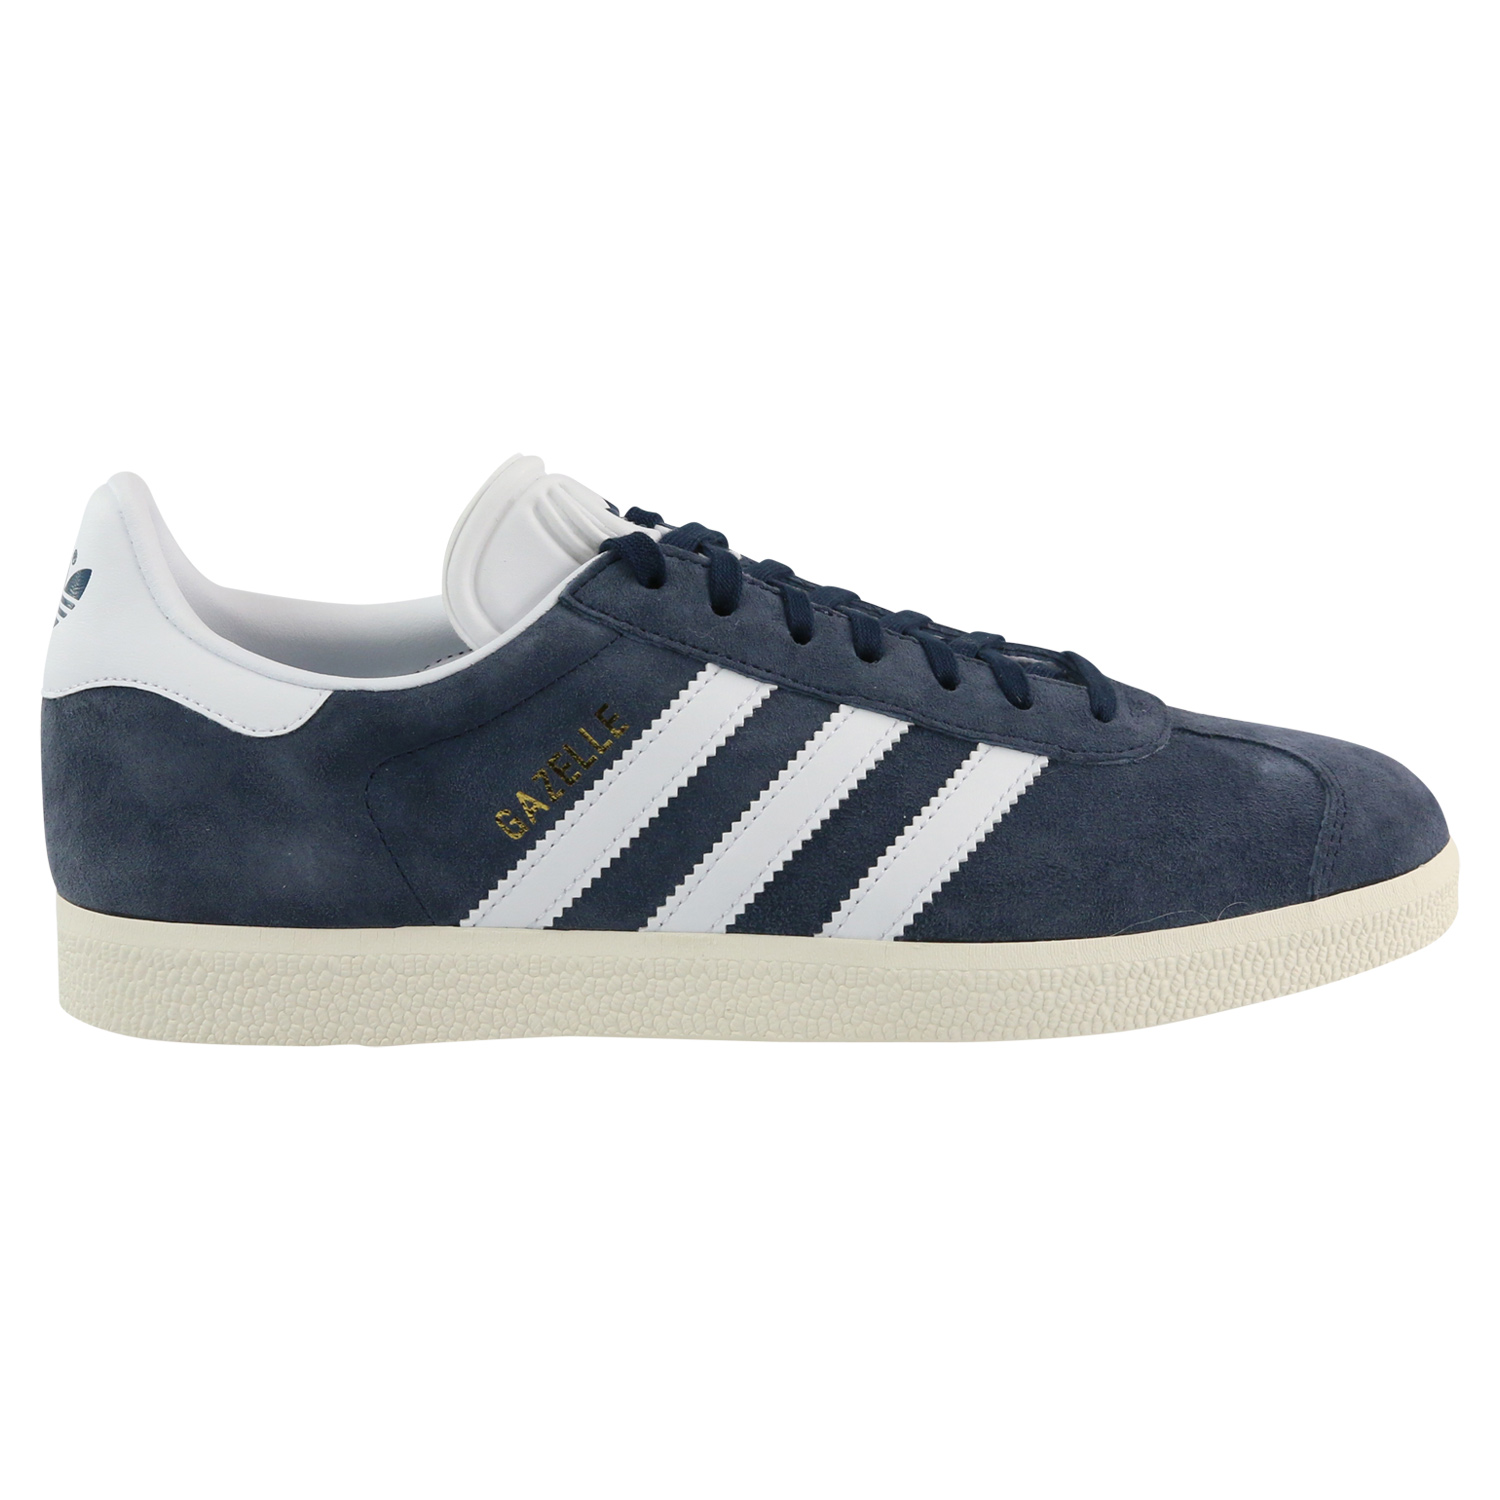 adidas originals gazelle schuhe turnschuhe sneaker herren damen ebay. Black Bedroom Furniture Sets. Home Design Ideas